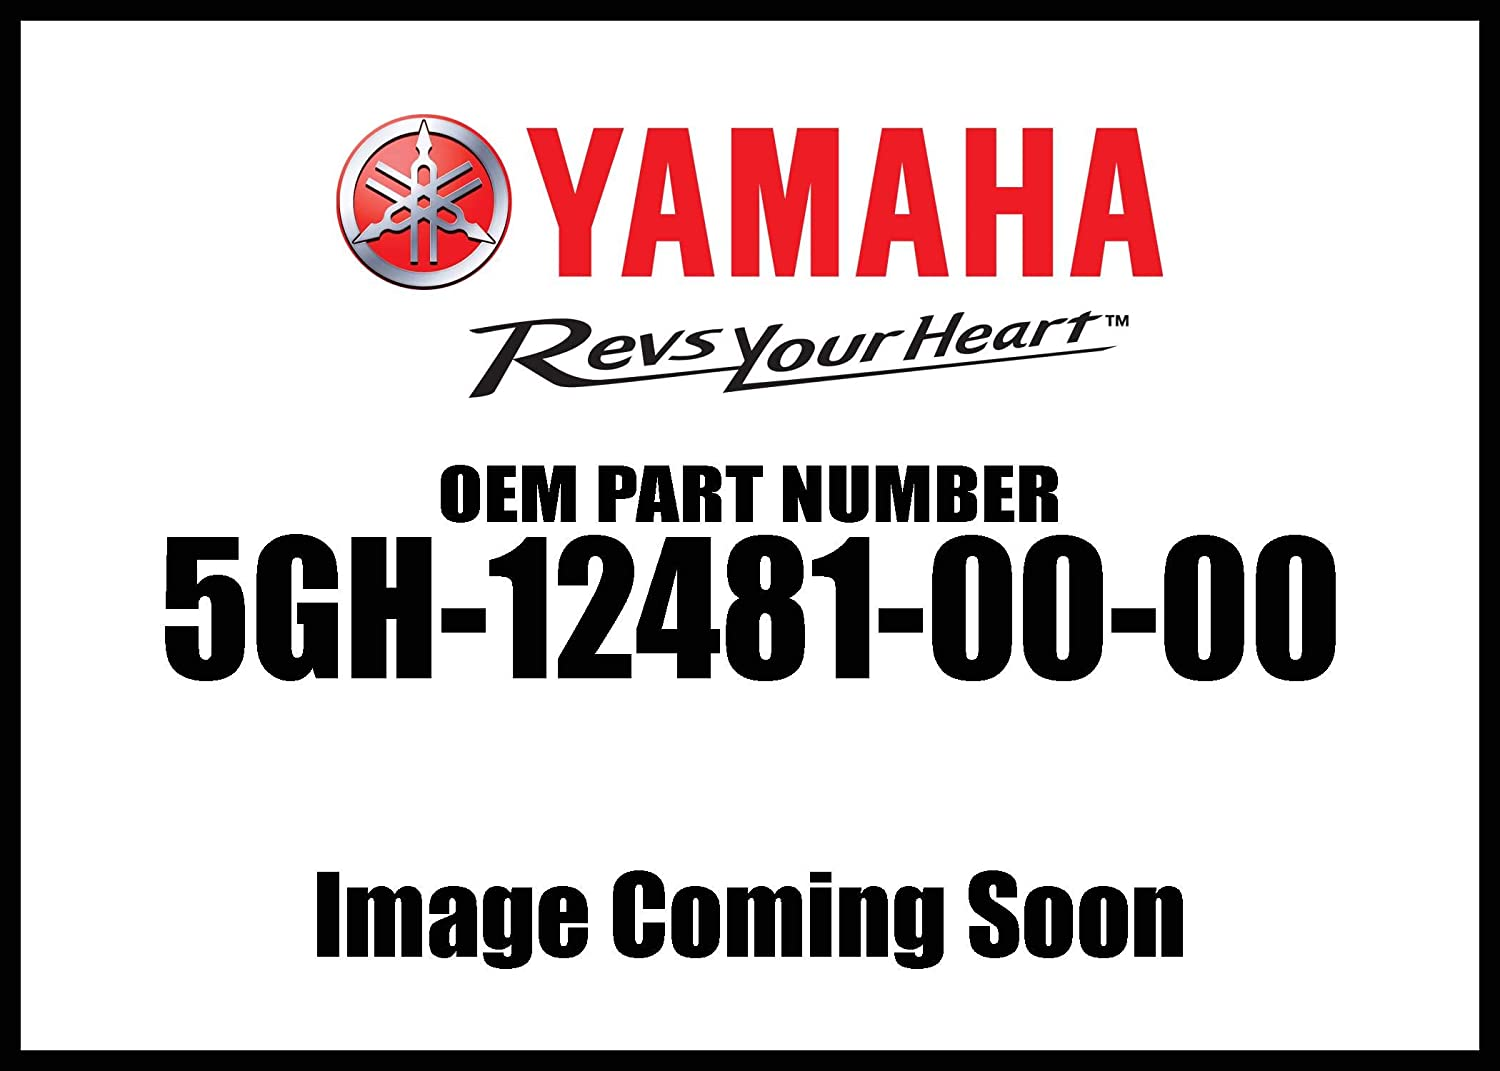 Yamaha 5GH-12481-00-00 Pipe 1; 5GH124810000 Made by Yamaha